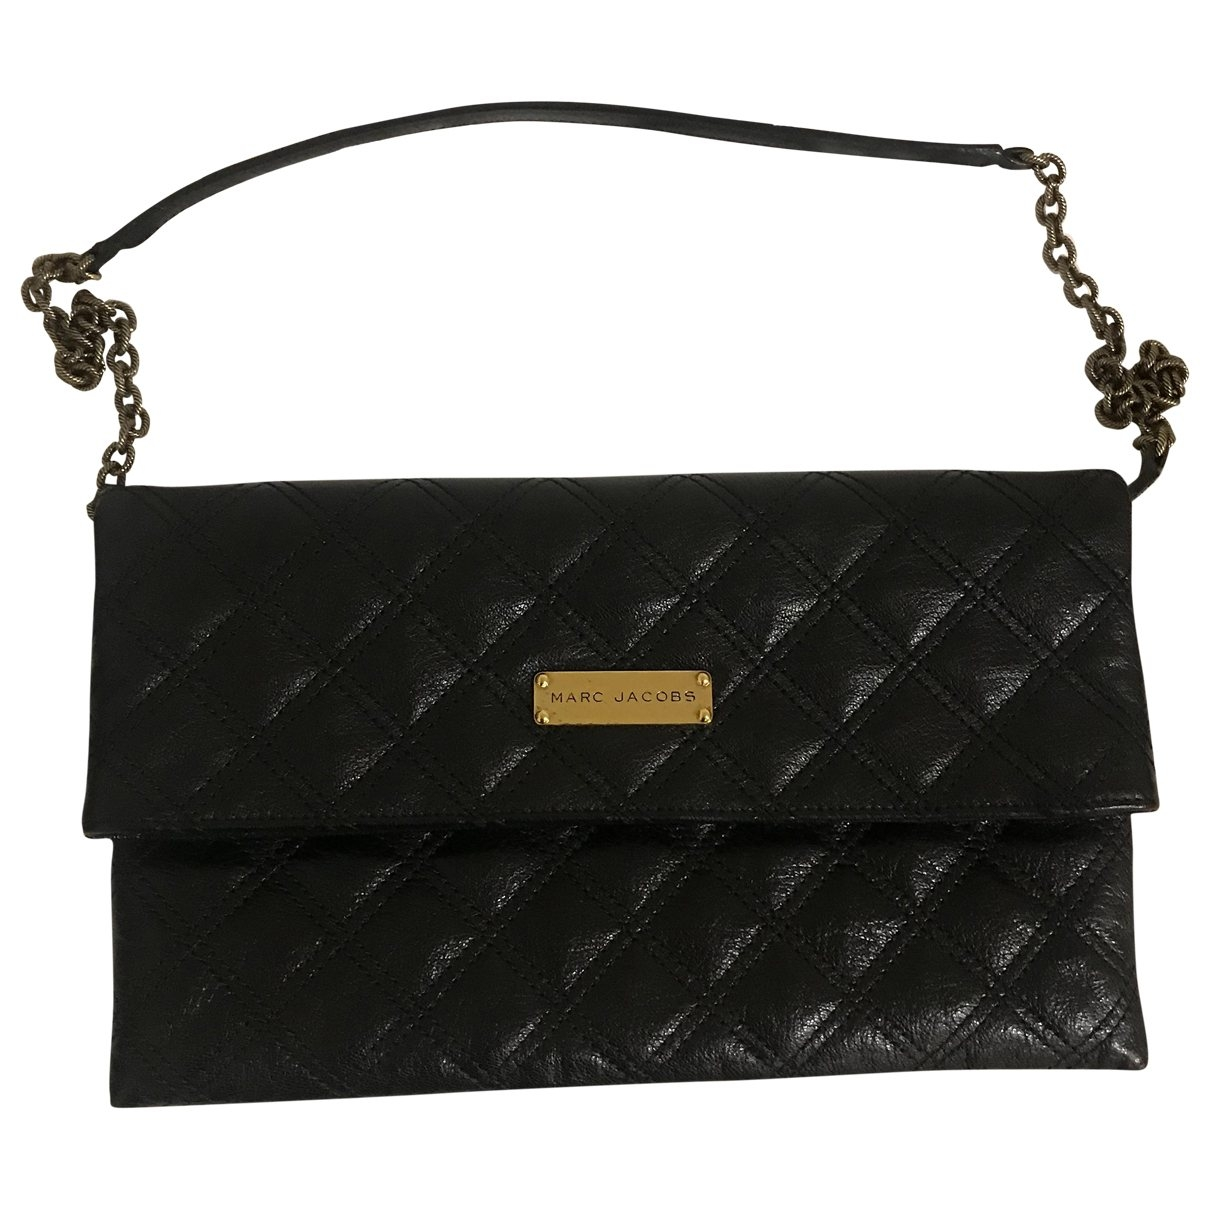 Marc Jacobs Single Black Leather Clutch bag for Women \N